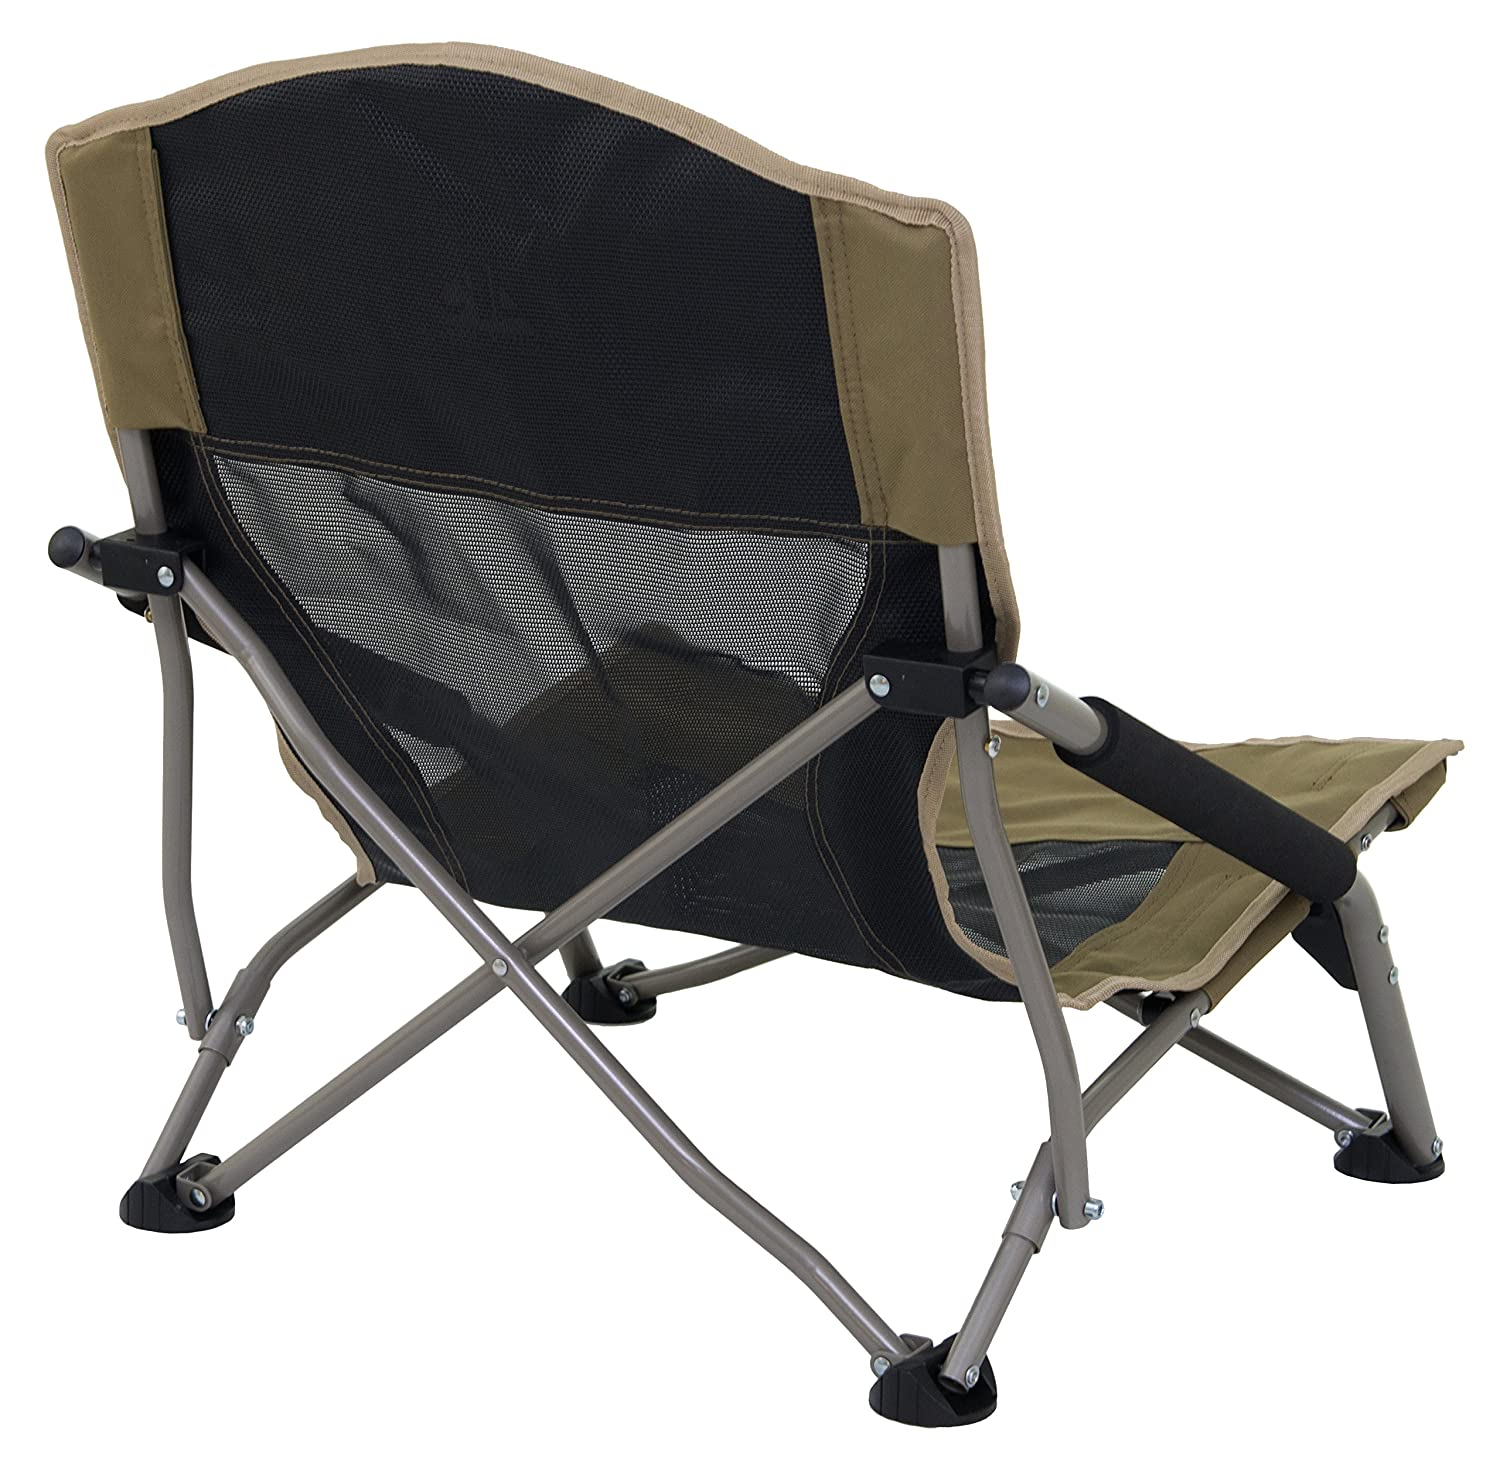 sport folding chairs emeco navy chair camping carry bag travel picnic beach